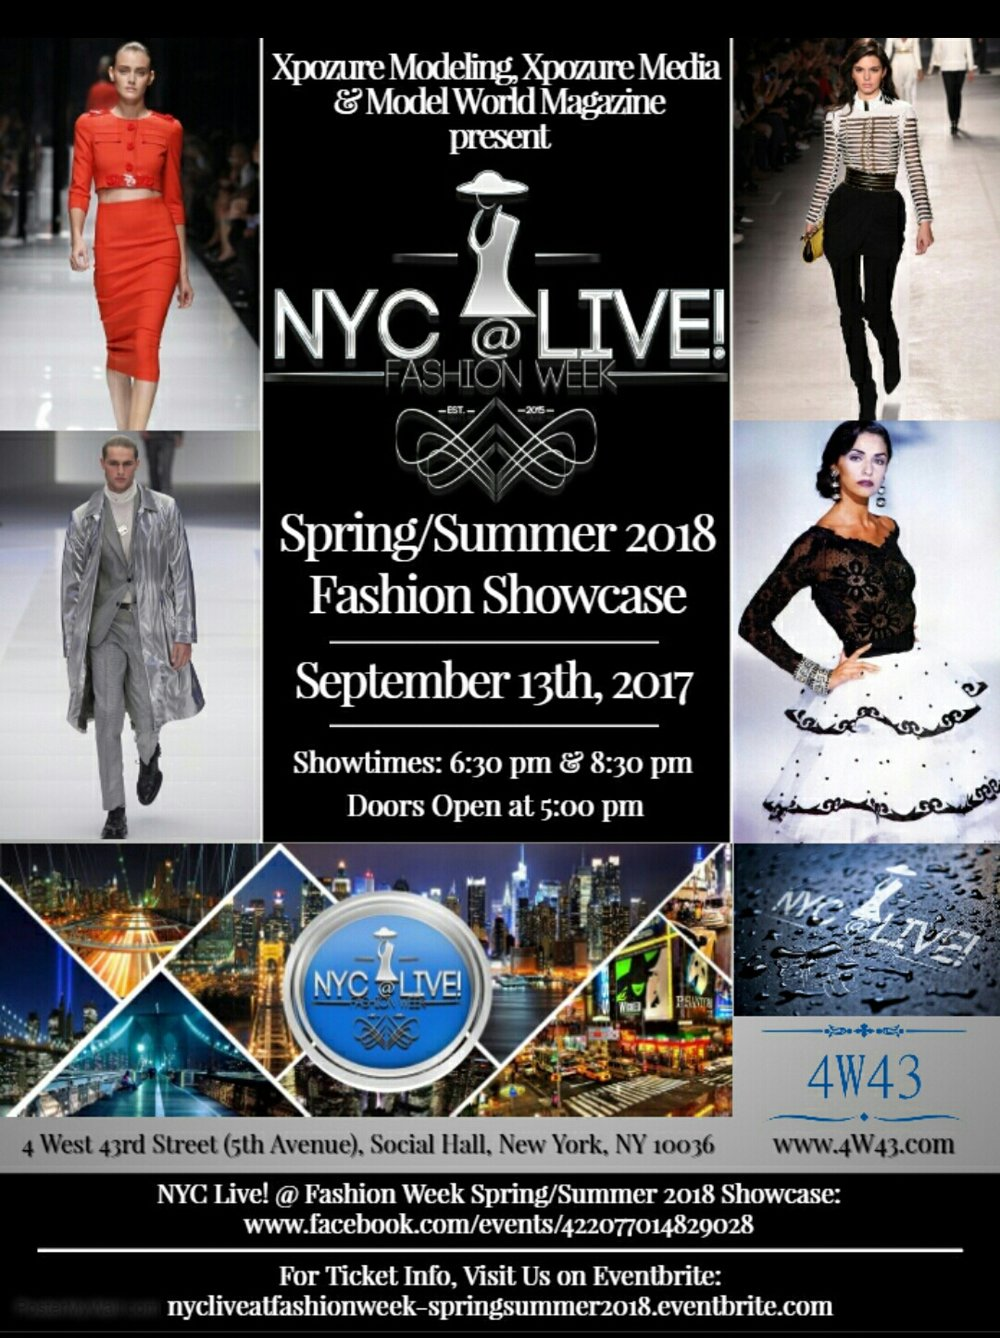 'N FASHION NEWS!! - NewzFlash !Xpozure Modeling, Xpozure Media & Model World Magazine Present NYC @ LIVE FASHION WEEK for the Spring / Summer 2018 Fashion Showcase.This event sponsored by T450 Style & Launch & Notorious Pink Rose' @ Social Hall NYC 4 W 43rd Street NY NY 10036 Doors Open at 5:00 PM